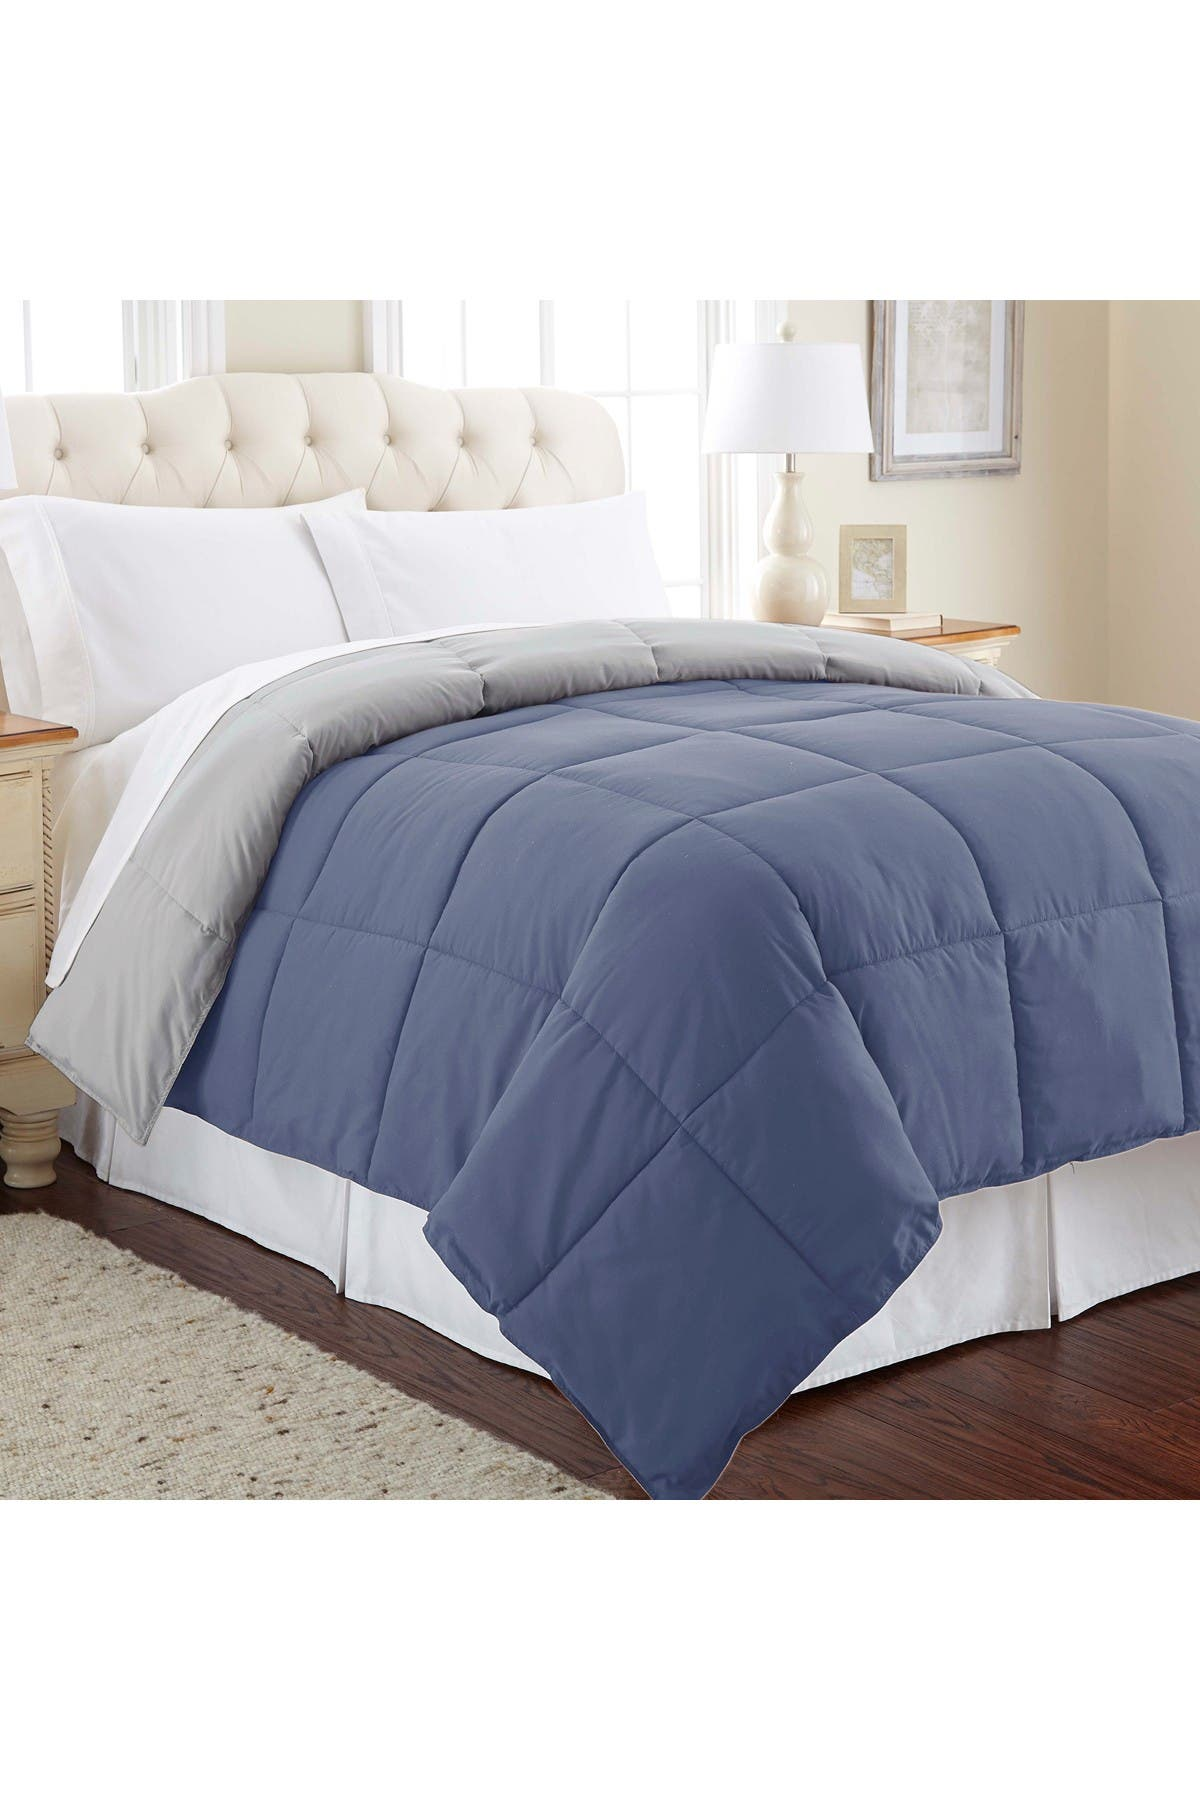 Image of Modern Threads Queen Down Alternative Reversible Comforter - Infinity Blue/Silver